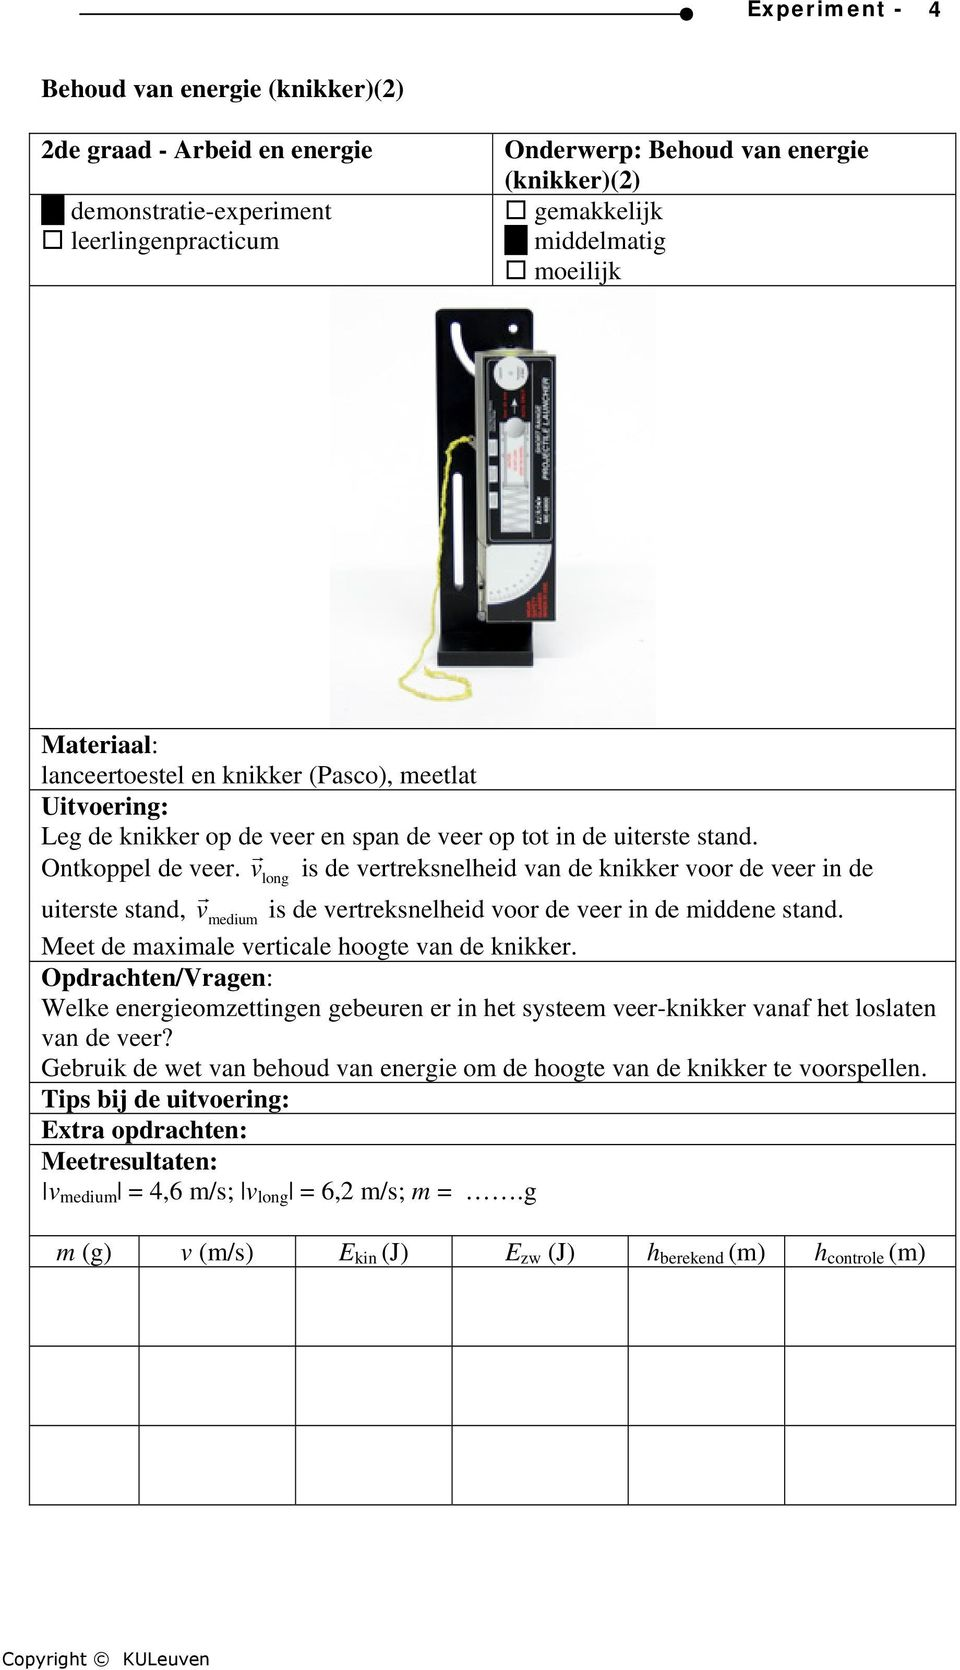 v r long is de vertreksnelheid van de knikker voor de veer in de uiterste stand, v r medium is de vertreksnelheid voor de veer in de middene stand.